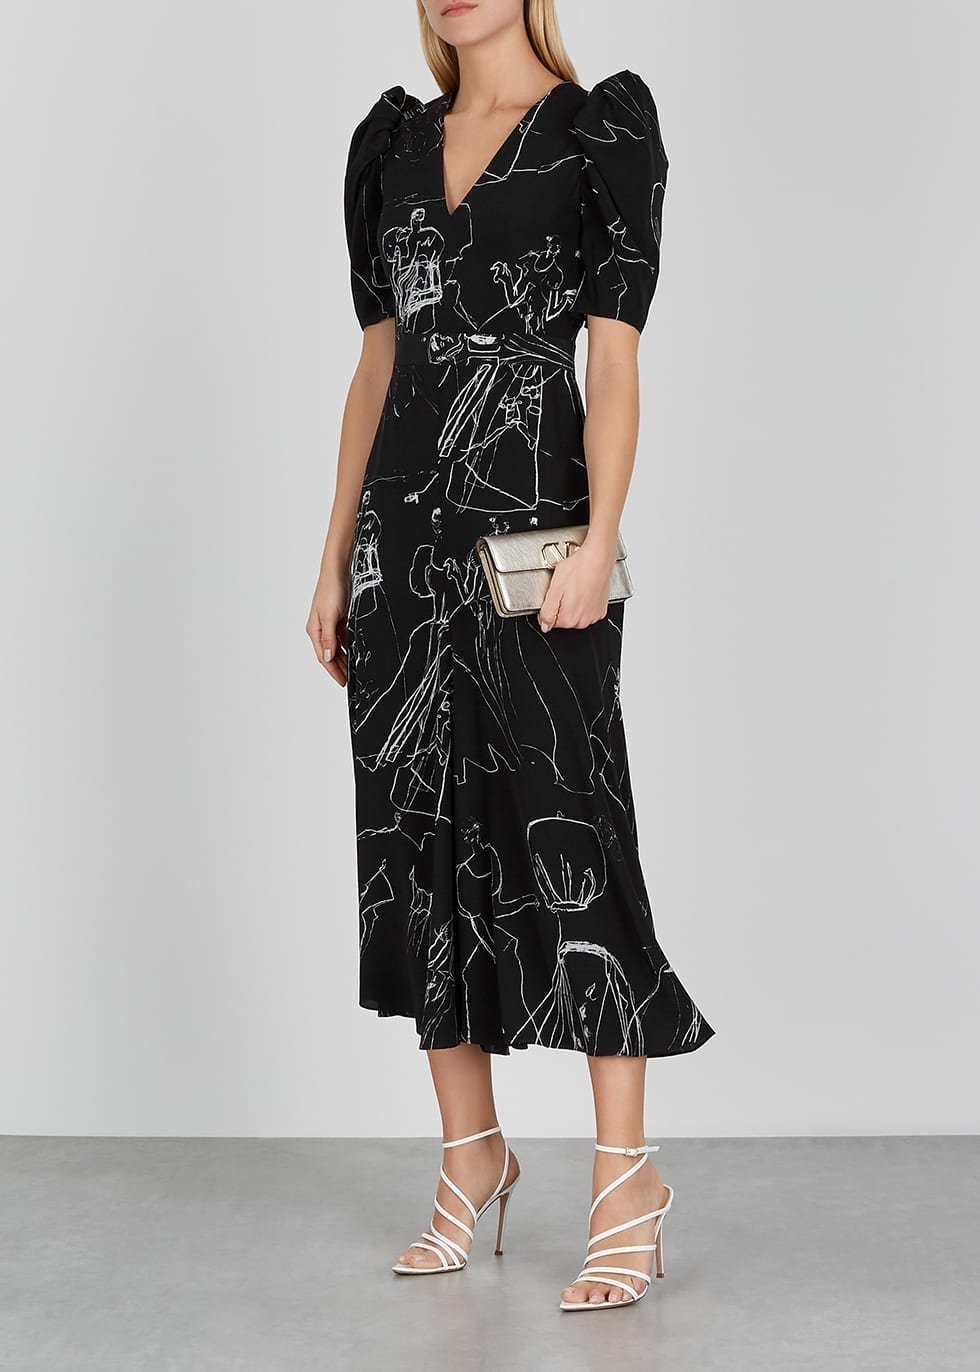 ALEXANDER MCQUEEN Black Printed Silk Dress